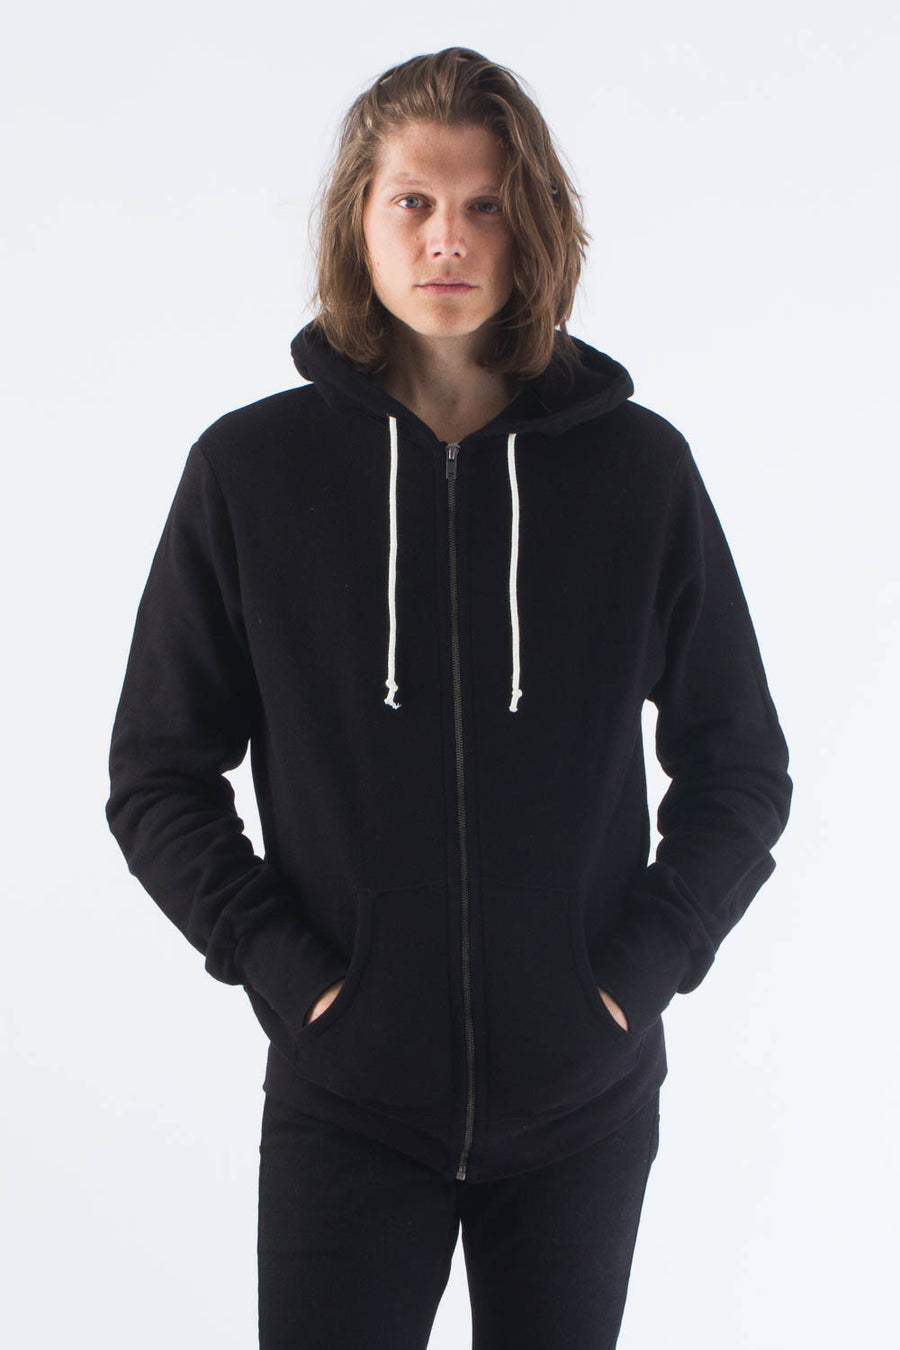 Kelly Cole Signature Zip Up Hoodie - Kelly Cole USA